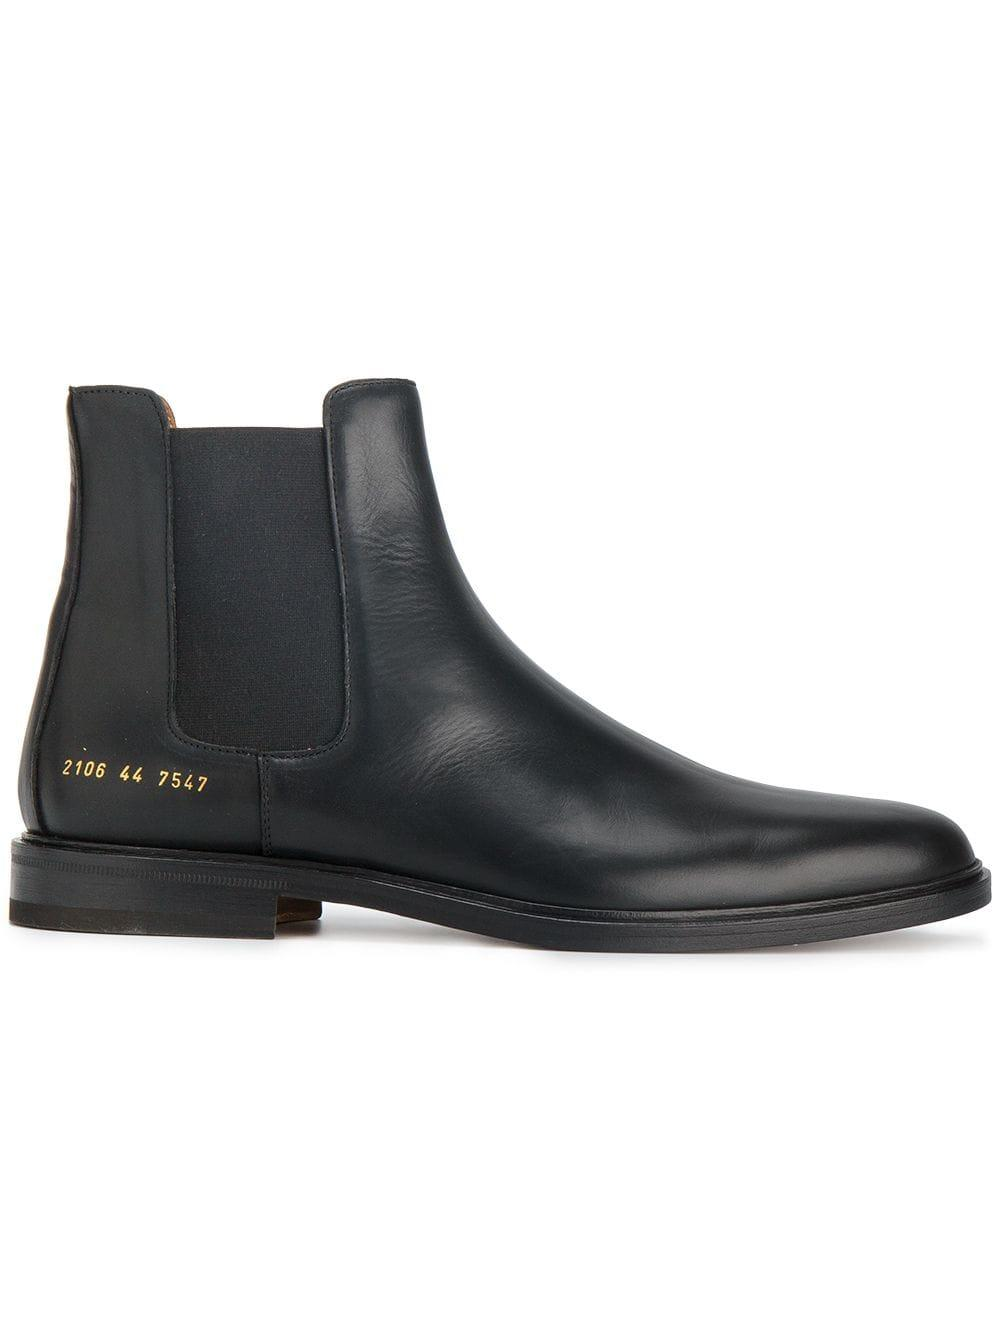 Common Projects Leather Chelsea Boots In Black For Men